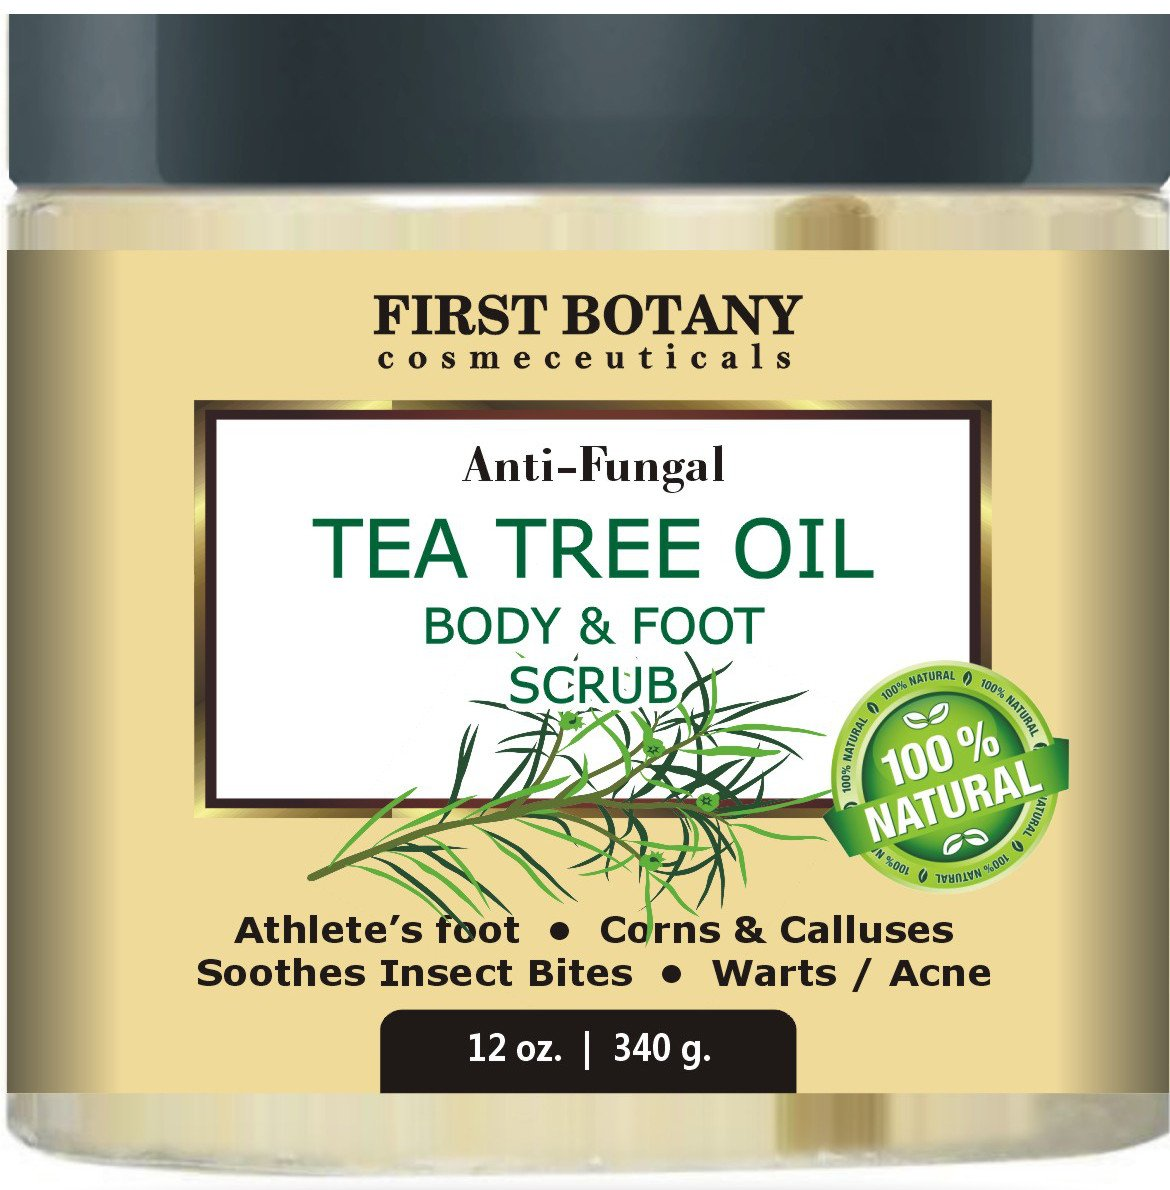 Anti-Fungal Tea Tree Oil Body and Foot Scrub